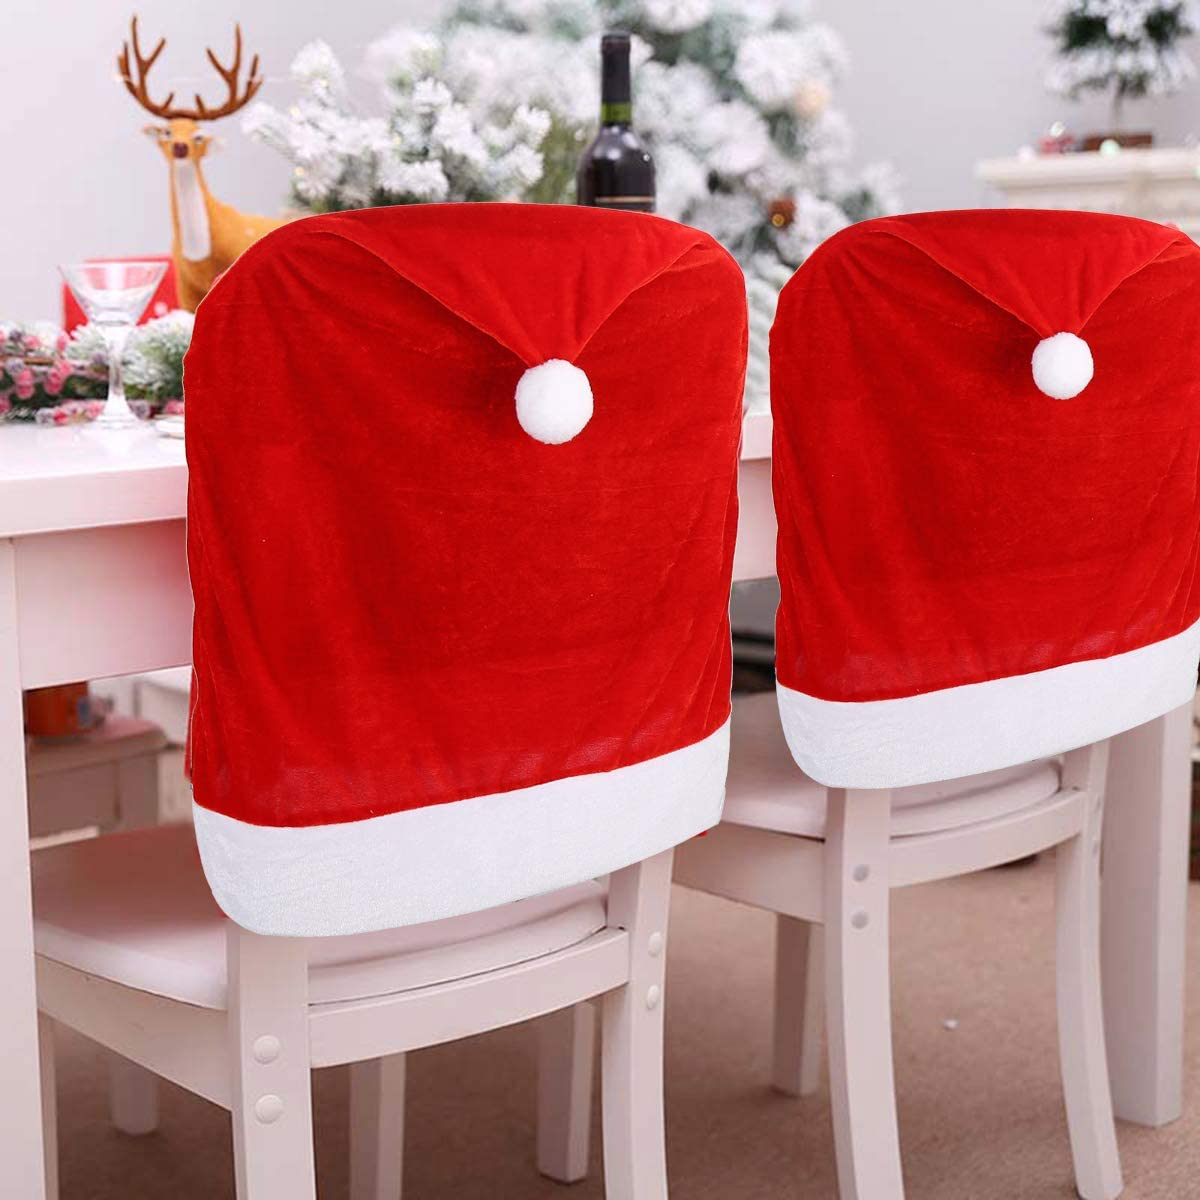 4pc Red Hat Dining Chair Slipcovers,Christmas Chair Back Covers Kitchen Chair Covers for Christmas Holiday Festival Decoration: Home & Kitchen